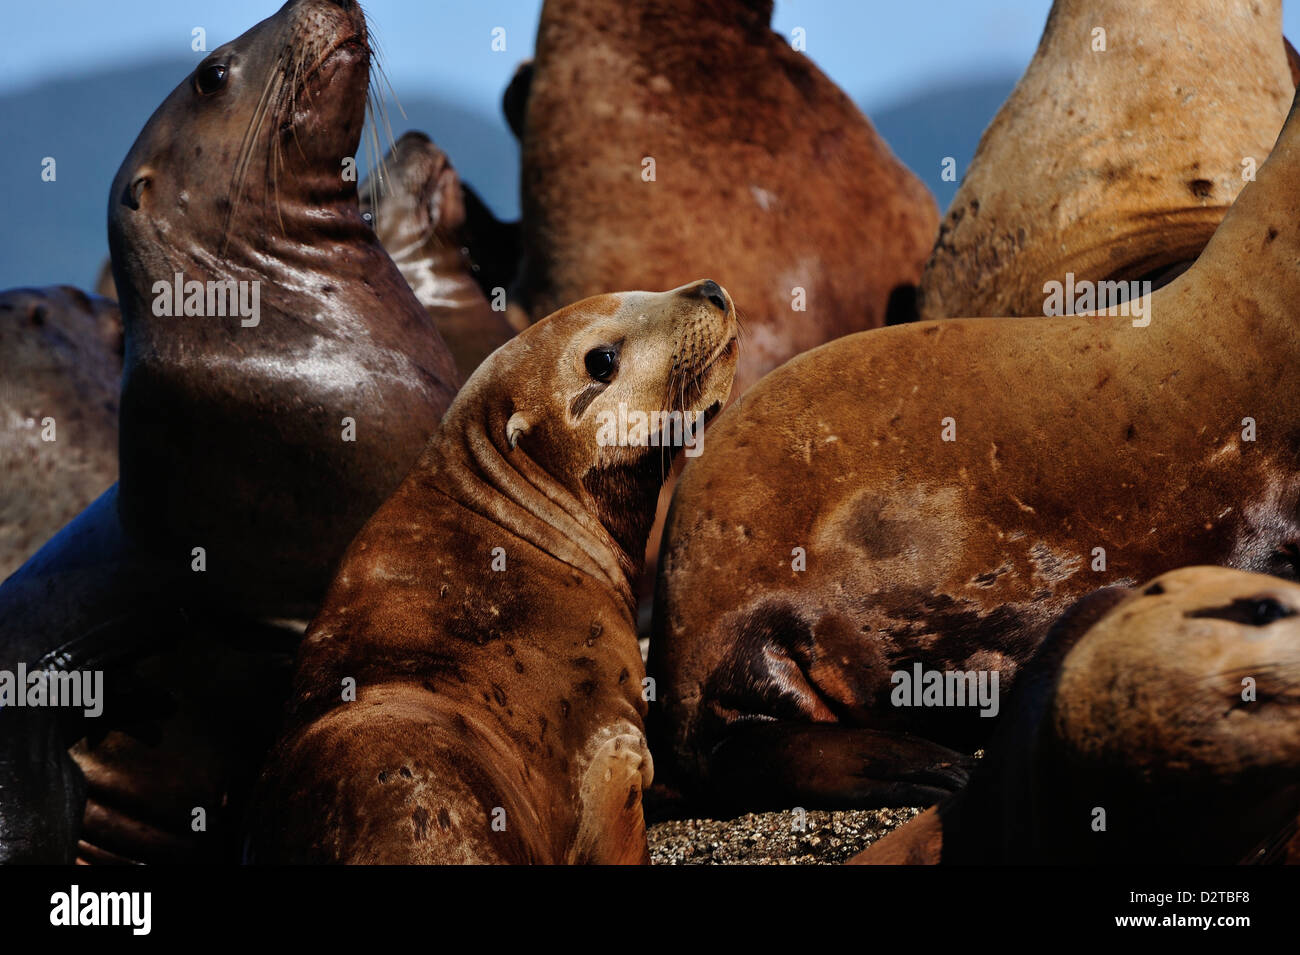 Sea lions in the Great Bear Rainforest, British Columbia, Canada, North America - Stock Image